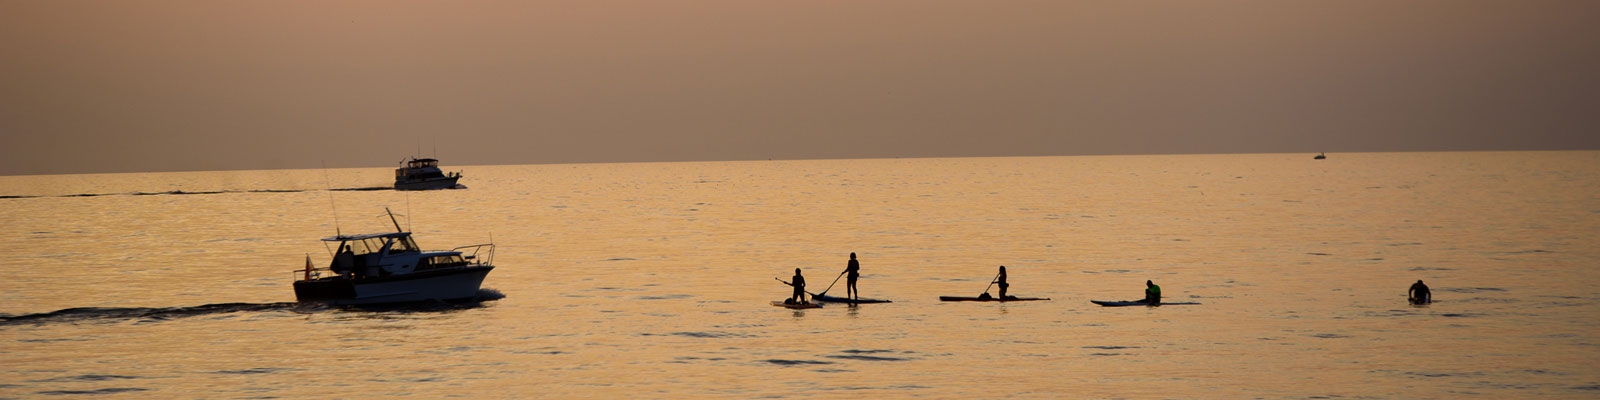 Stand-up Paddle Surfing